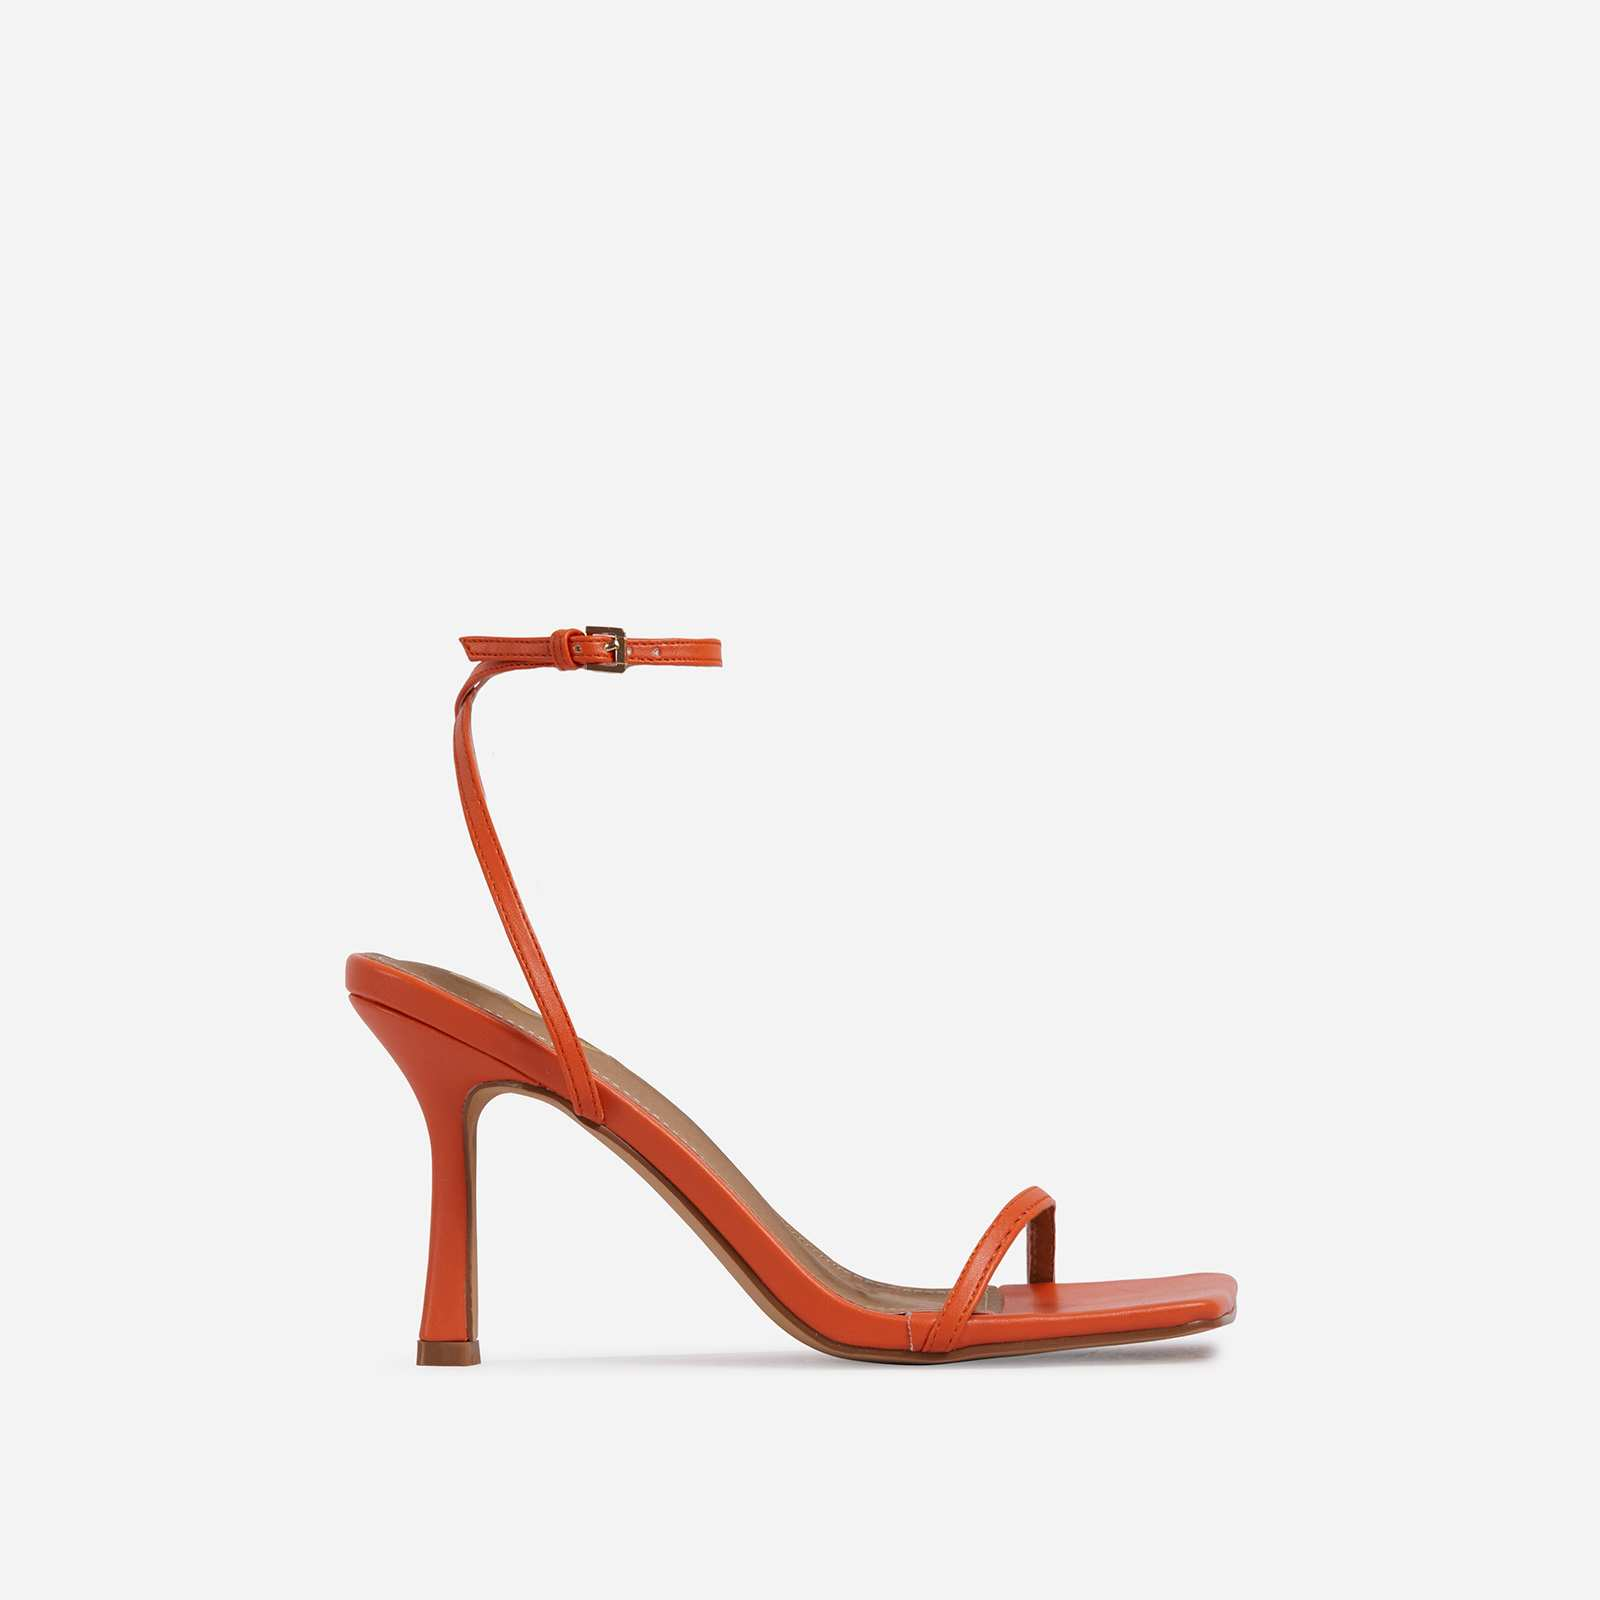 Savannah Barely There Square Toe Heel In Orange Faux Leather